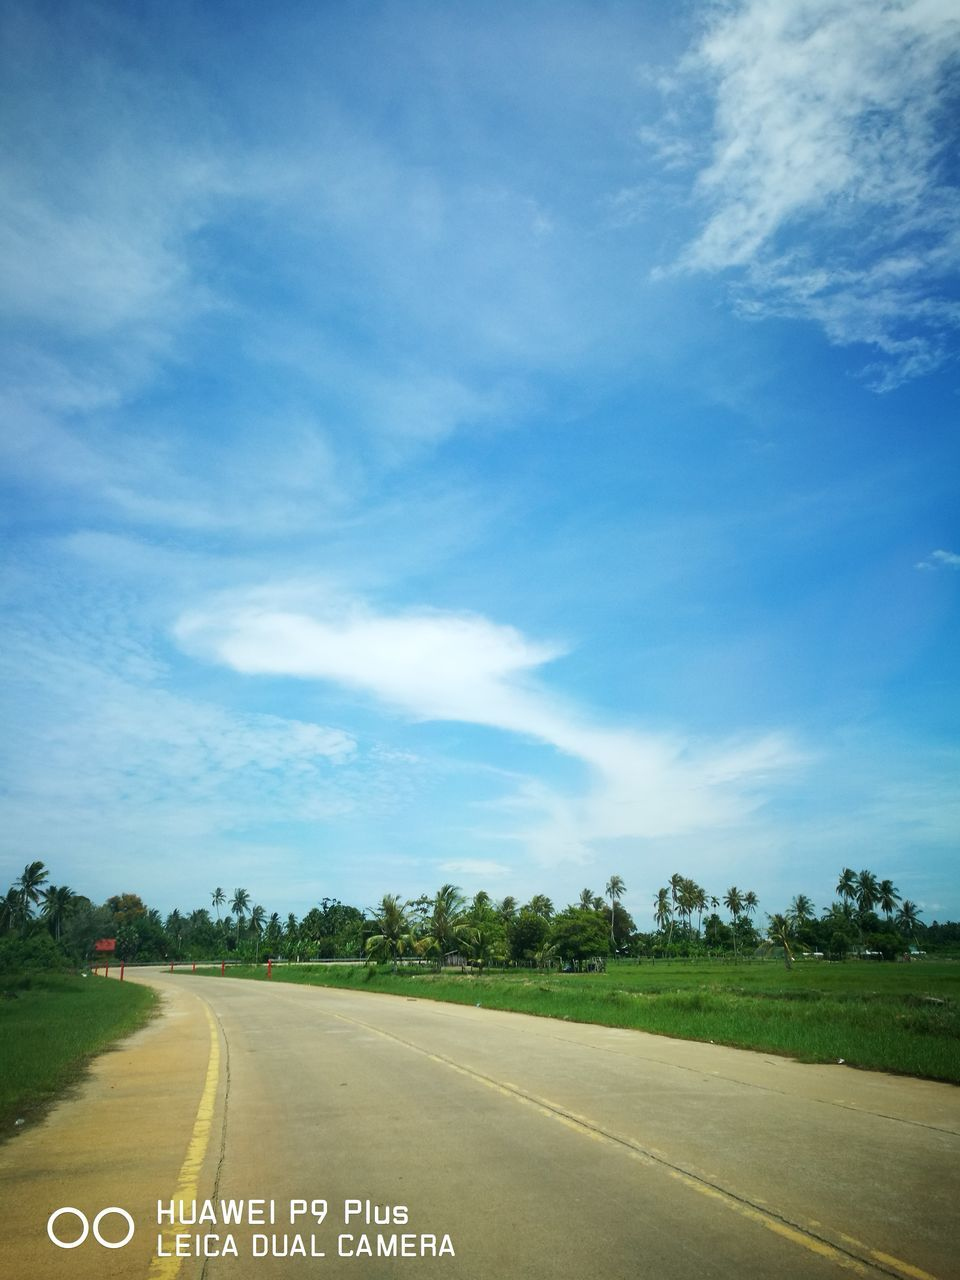 sky, cloud - sky, landscape, the way forward, road, scenics, tranquility, day, field, nature, no people, outdoors, tree, beauty in nature, rural scene